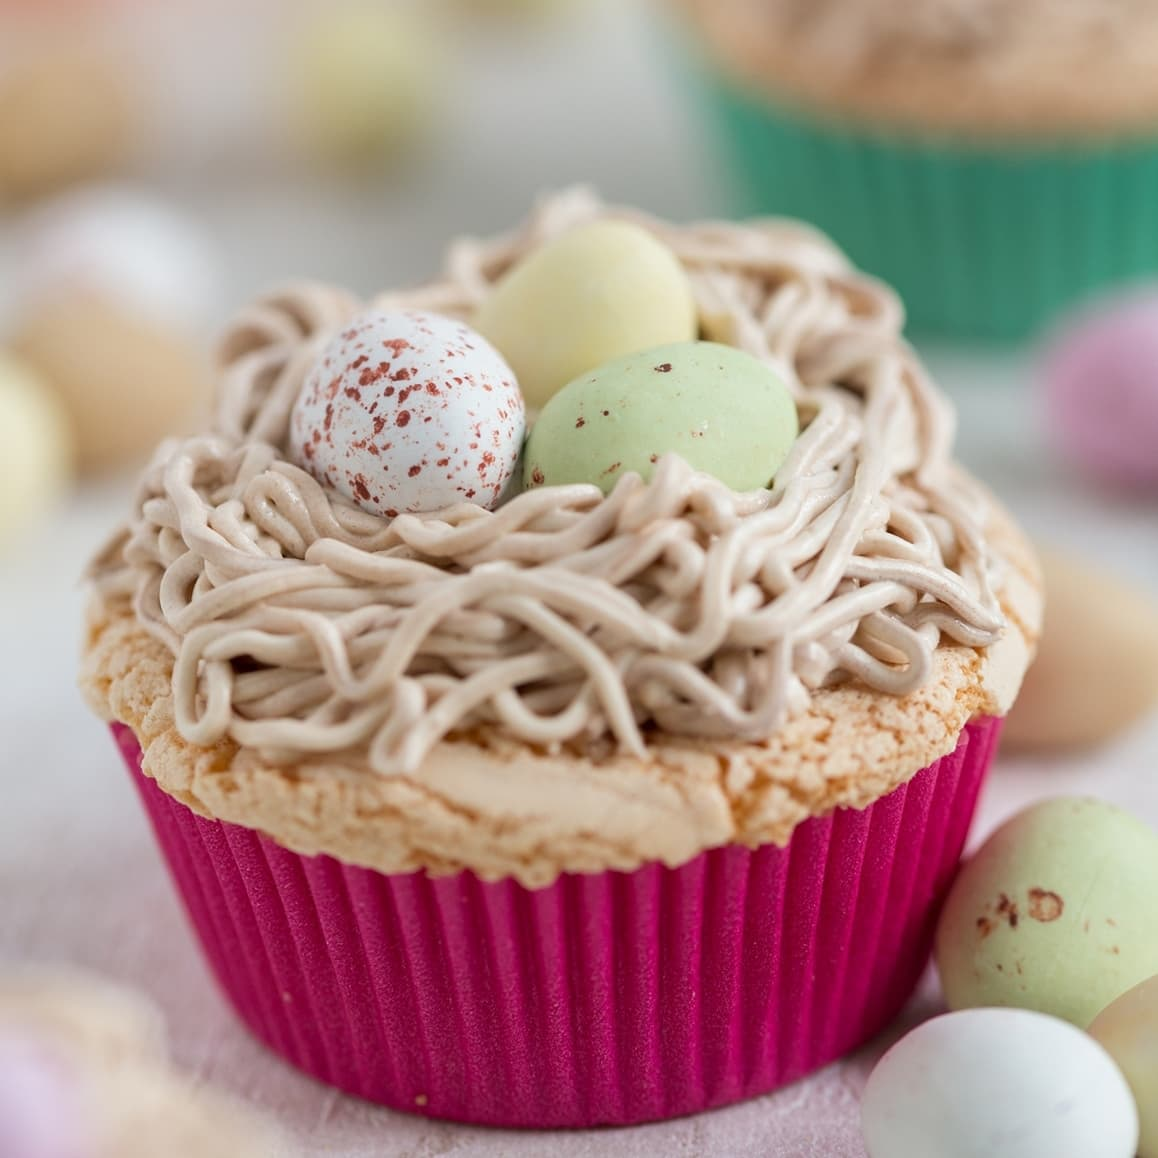 Bird's nest cupcake. Egg cake topped with a buttercream nest and egg chocolates.